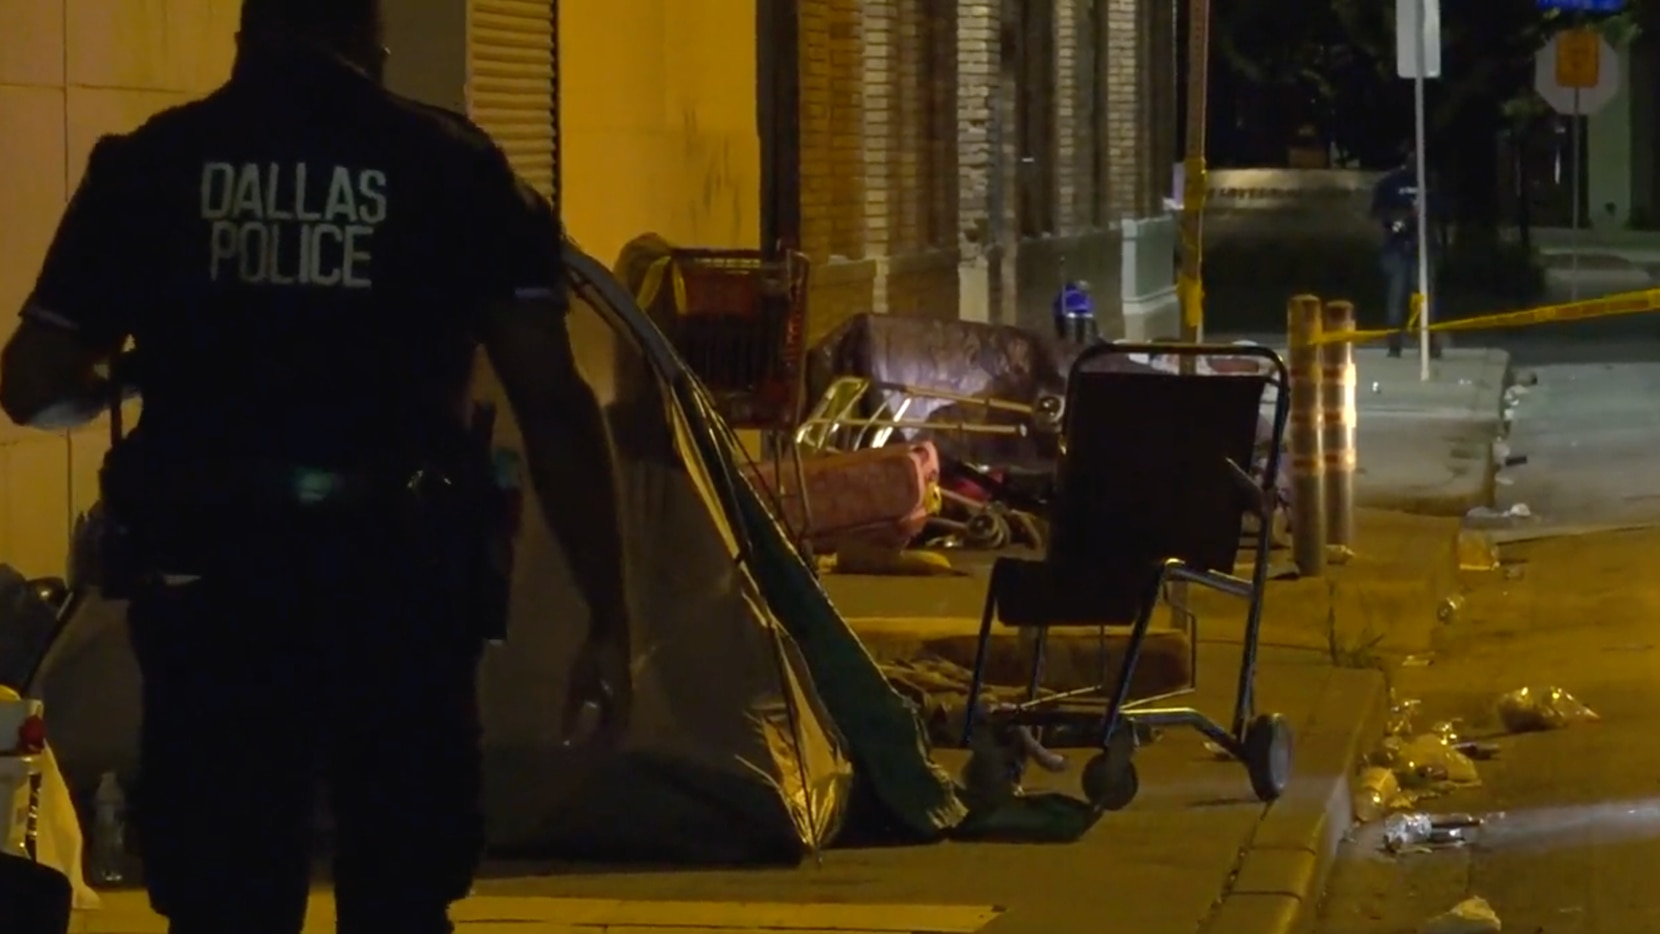 A person was fatally shot in August at a downtown homeless encampment, Dallas police said.